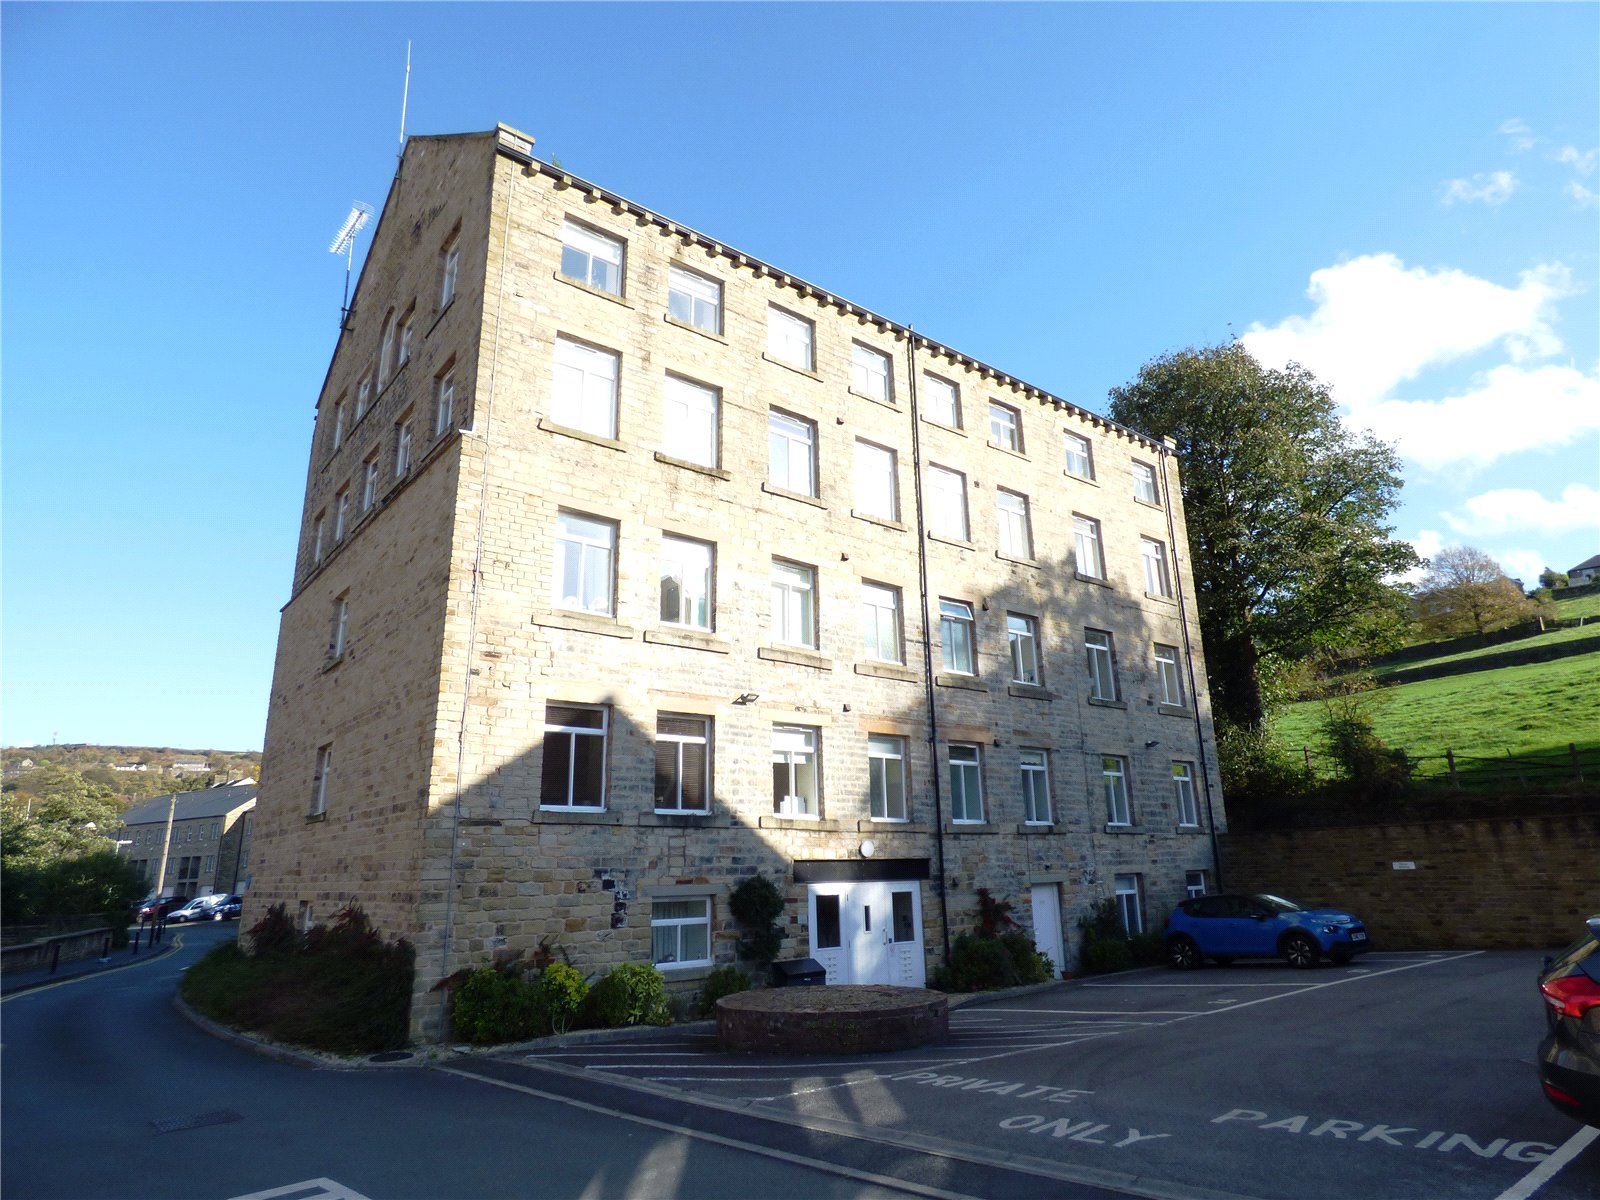 2 Bedrooms Apartment Flat for sale in The Mill, Lower Mill Lane, Holmfirth, West Yorkshire, HD9